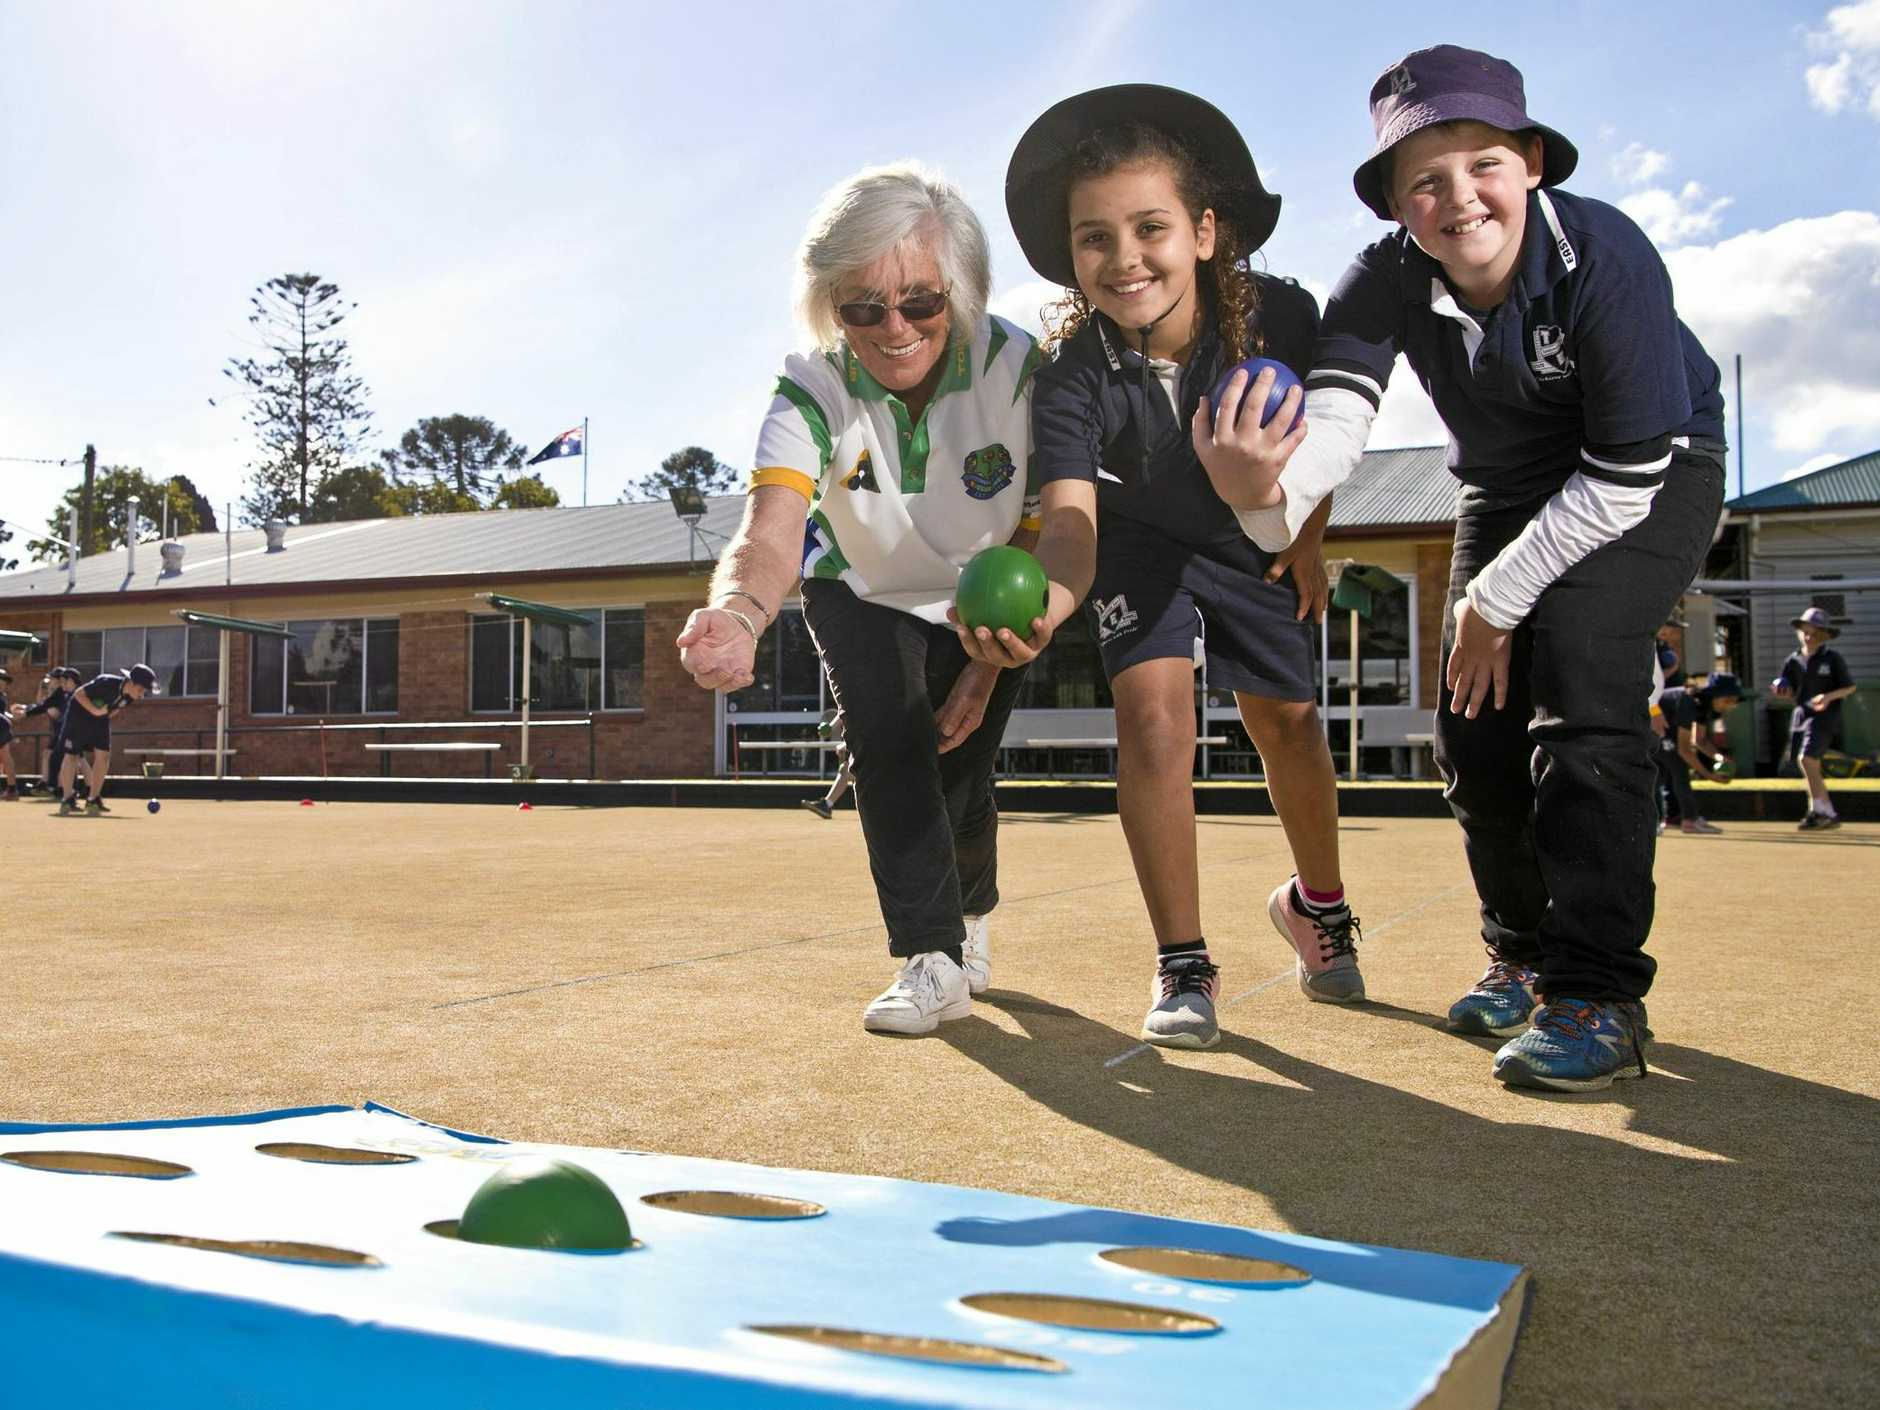 Toowoomba Bowls Club member Christine Plater (left) teaches Toowoomba East State School students Marianna De Paula and Luke Jordan the finer points of lawn bowls, Monday, June 25, 2018.